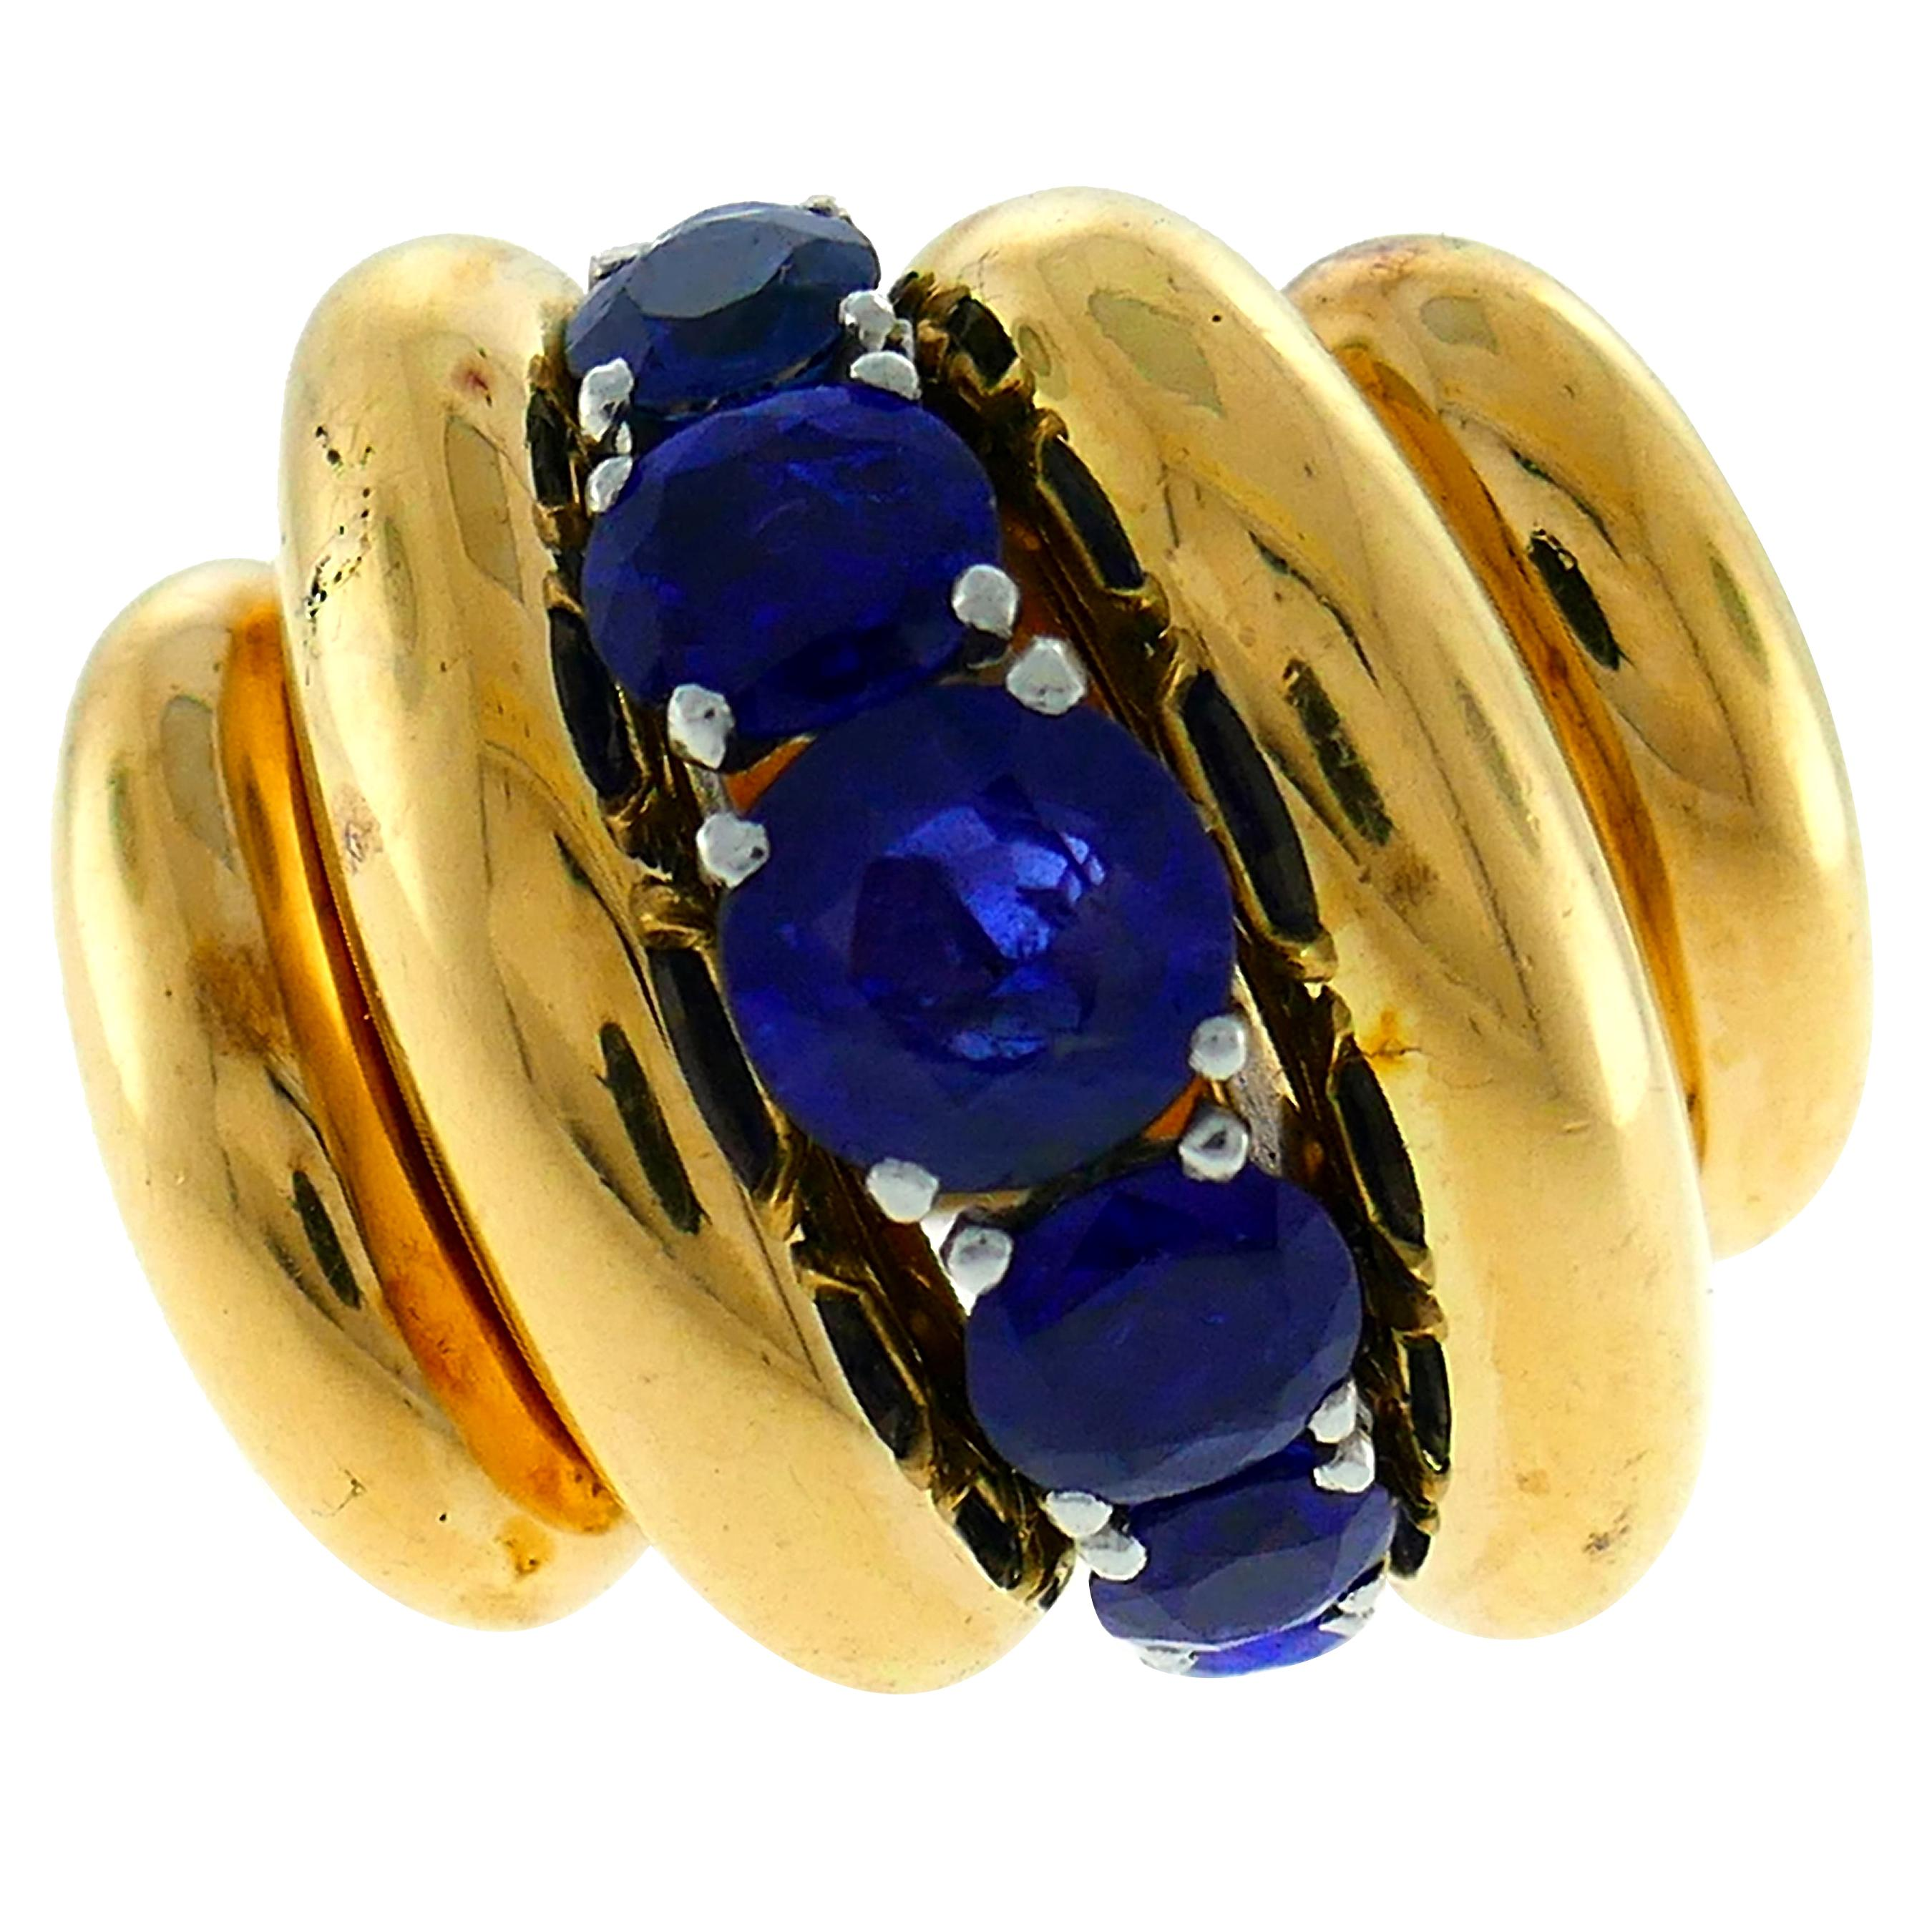 Van Cleef & Arpels Sapphire Yellow Gold Bombe Ring, 1970s